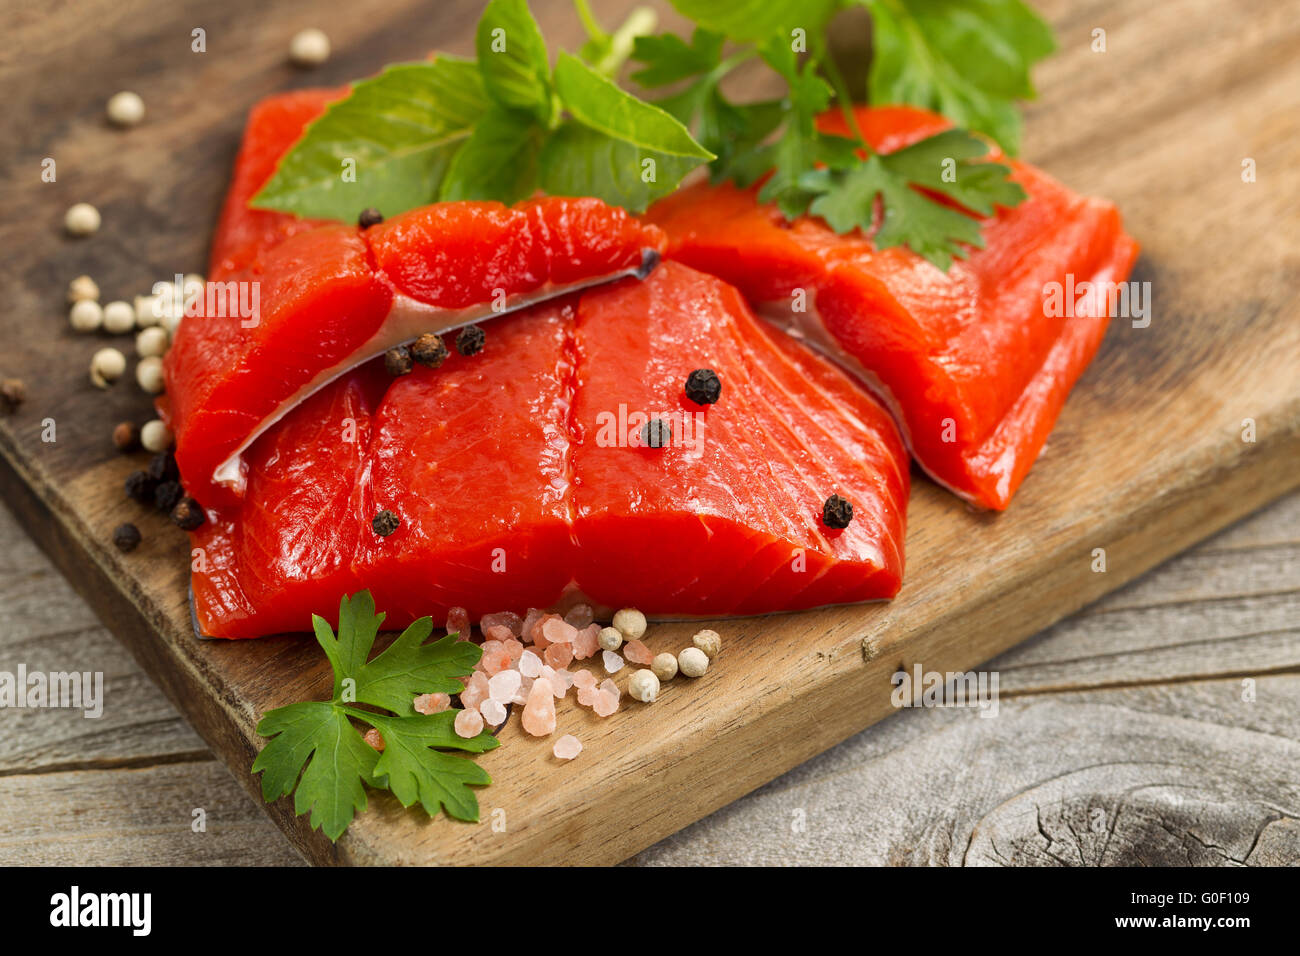 Fresh bright red Copper River Salmon fillets on rustic wooden server with spices and herbs Stock Photo